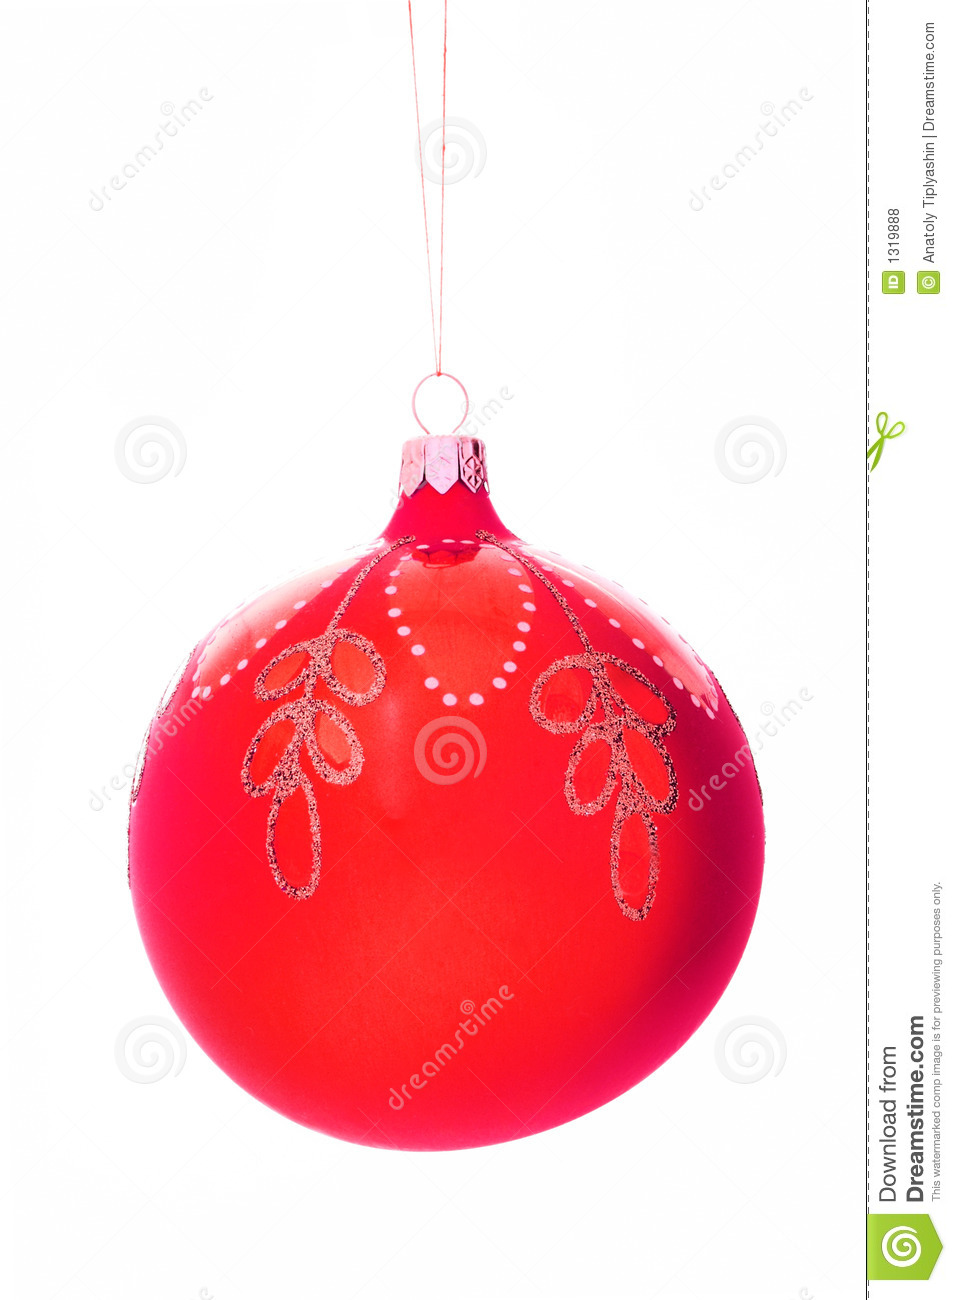 Christmas tree decorations ball stock photo image of